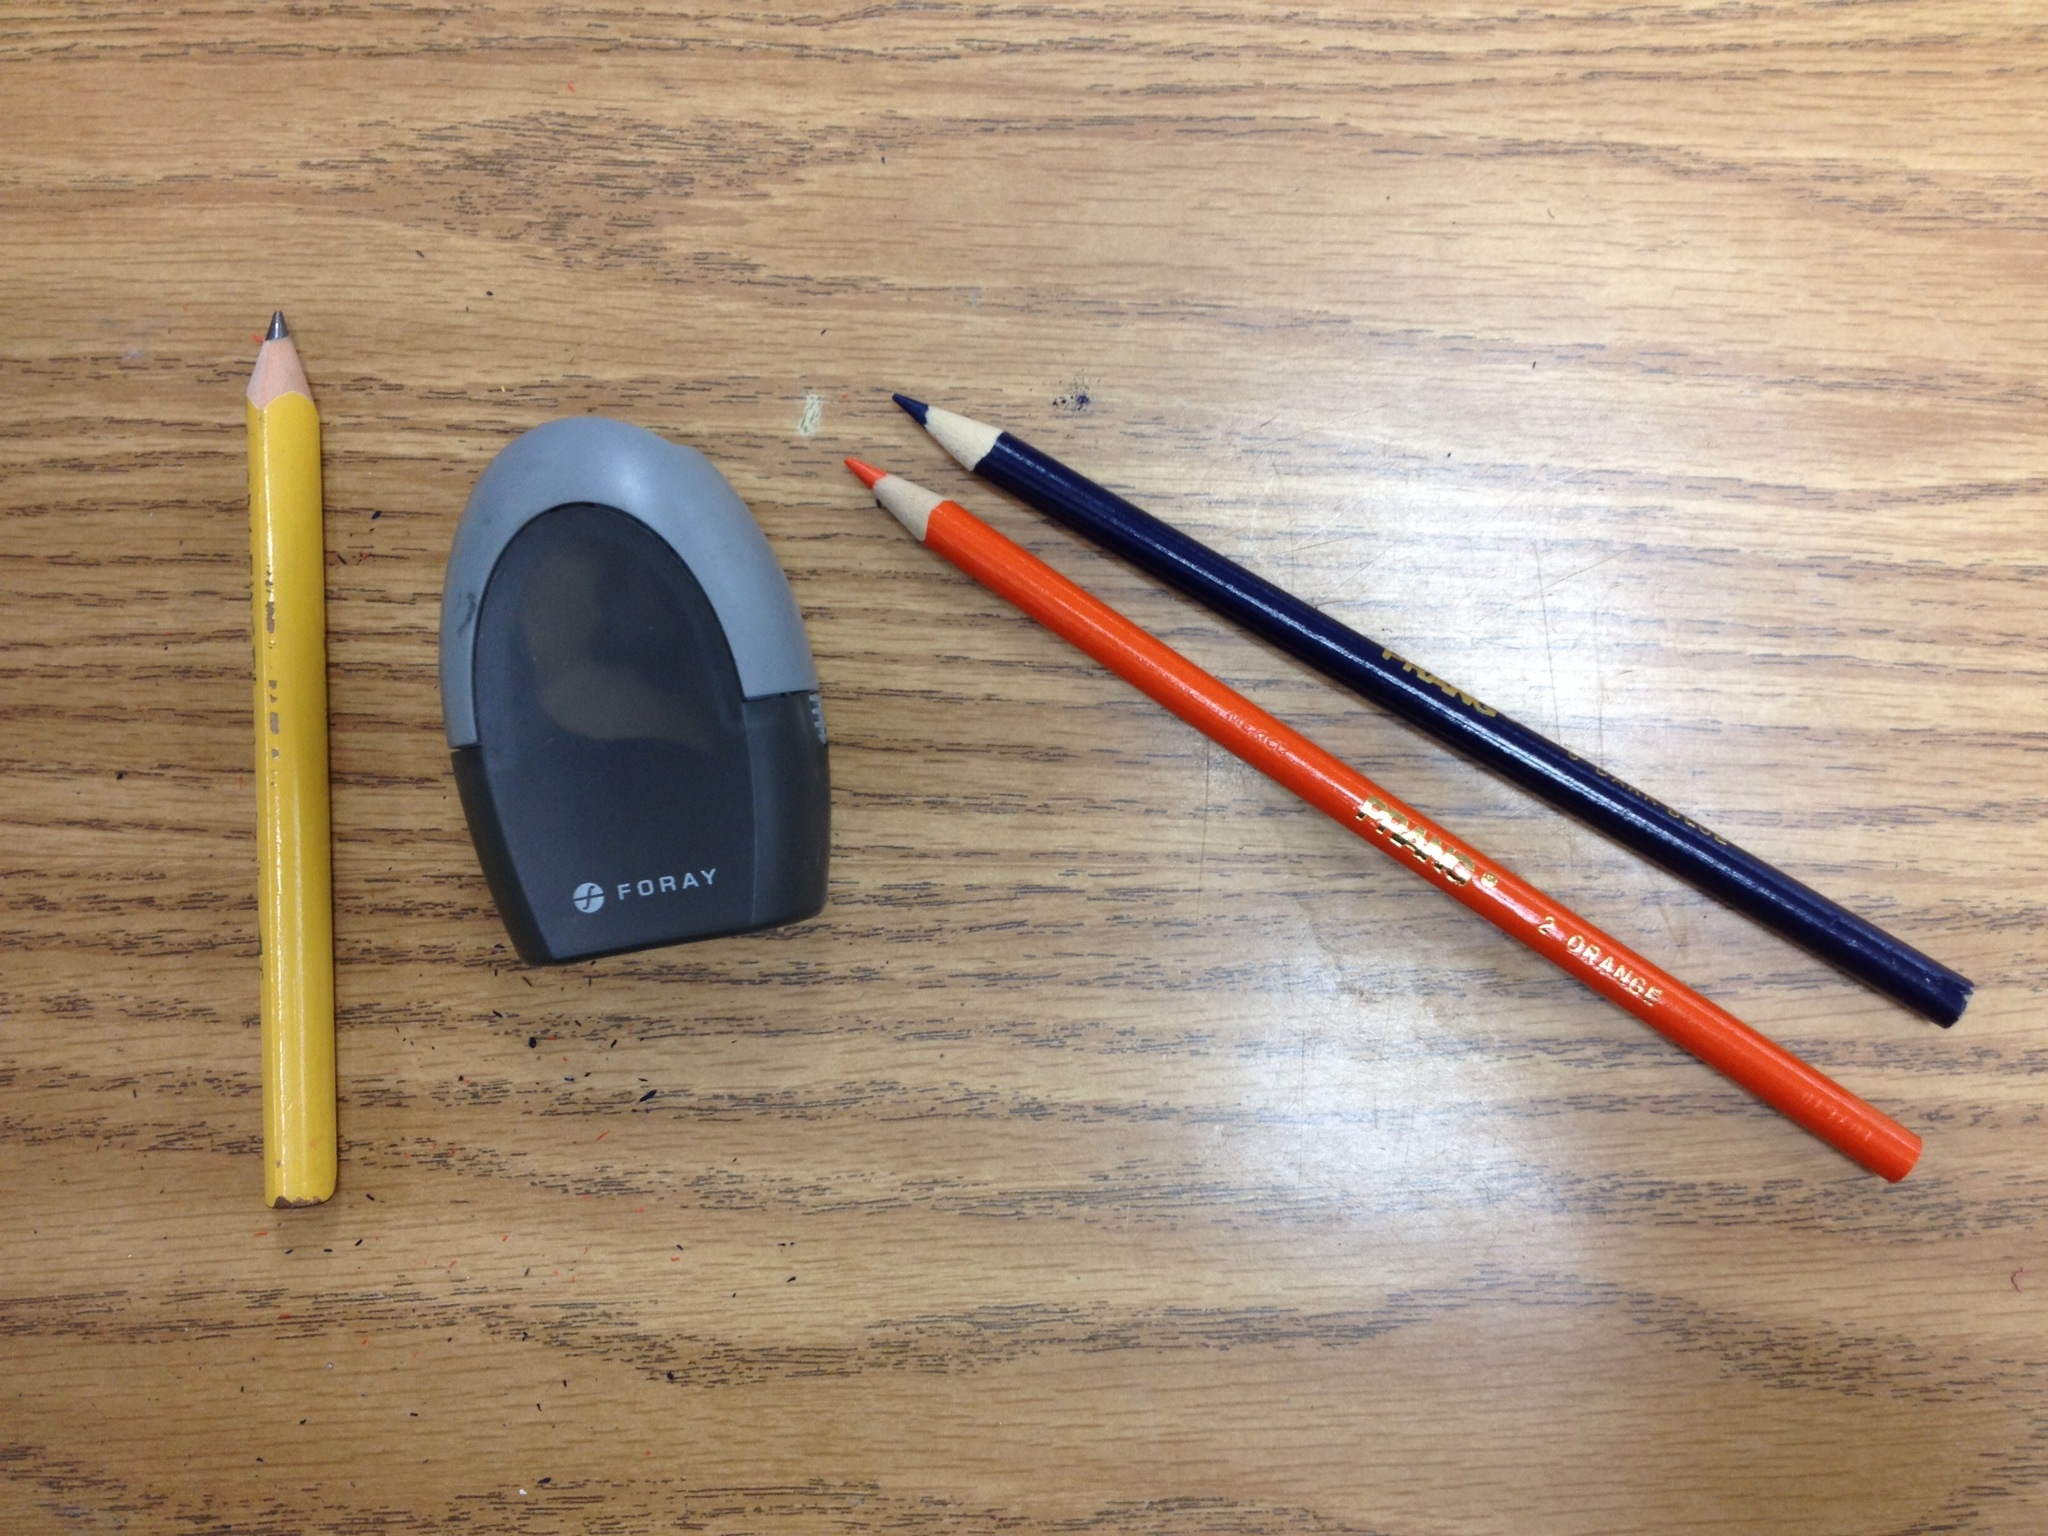 Foray manual pencil sharpener works great on large and small pencils and colored pencils.